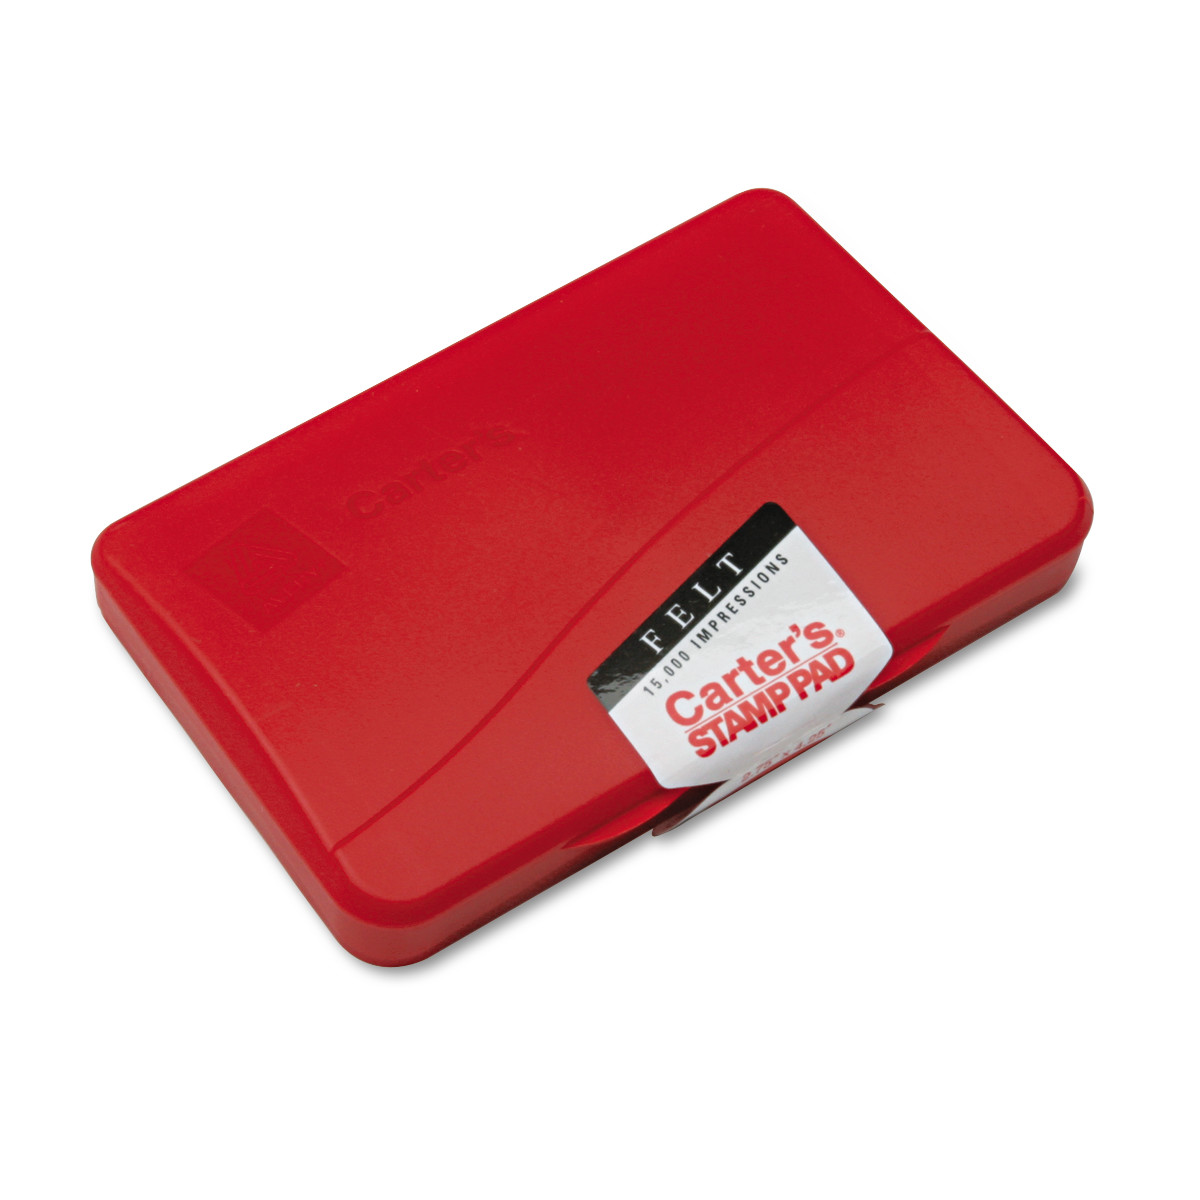 Carter's Carter's Felt Stamp Pad, 4 1 4 x 2 3 4, Red by AVERY-DENNISON